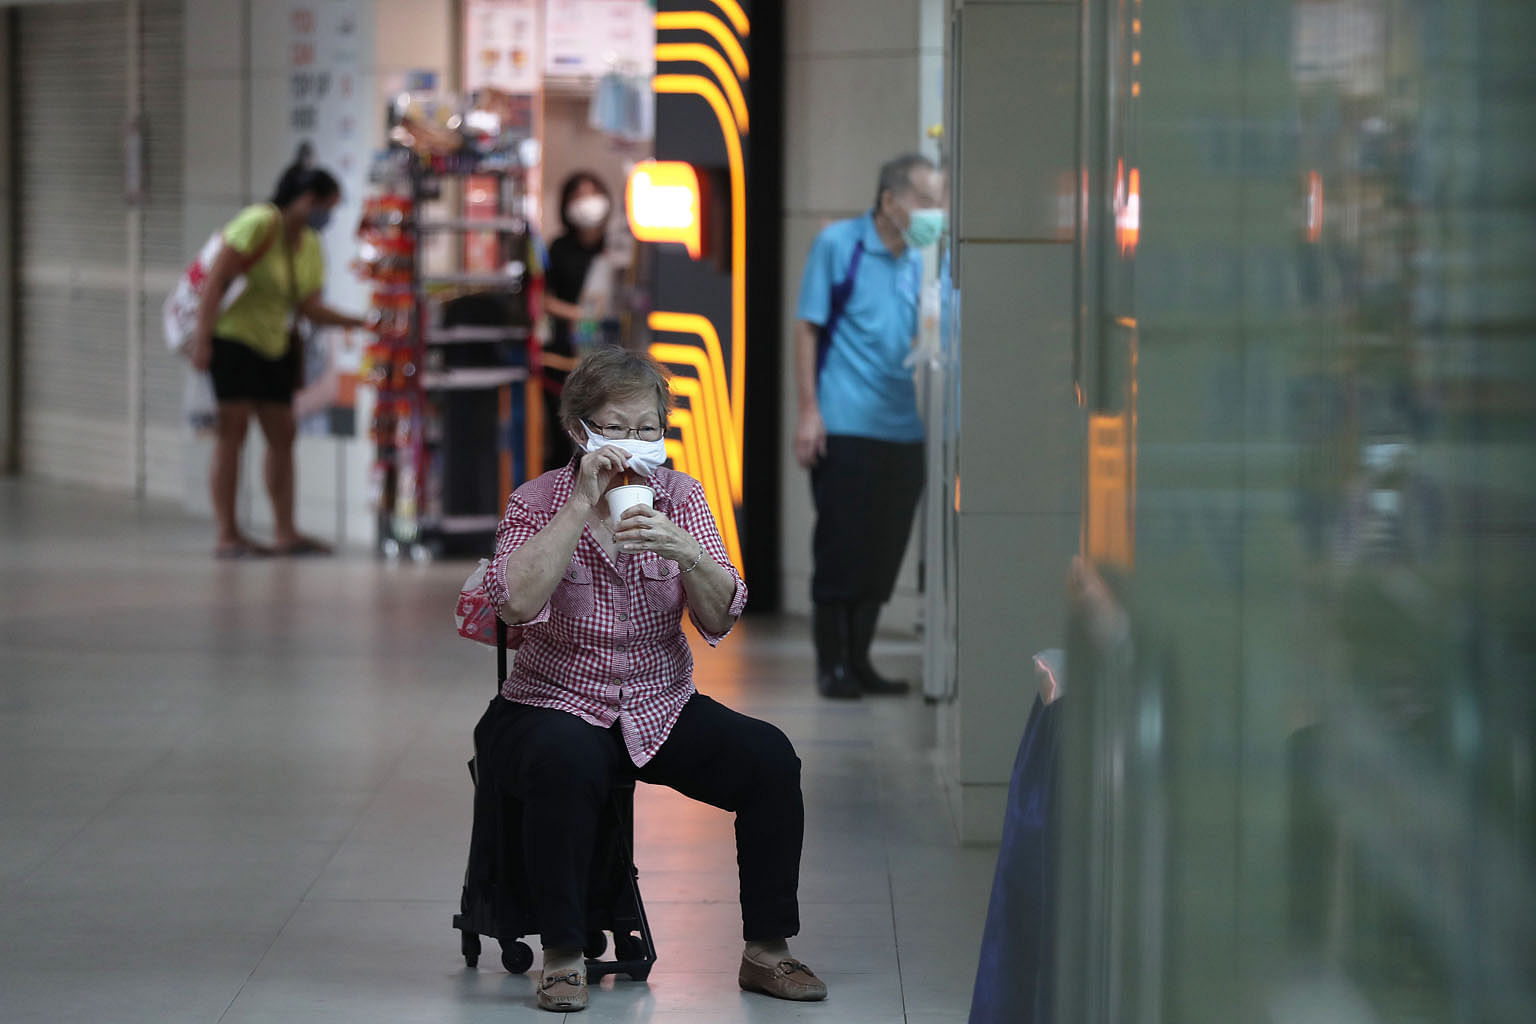 A woman resting on her trolley chair at Clementi bus interchange last Thursday. Tighter restrictions on the movement and gathering of people have thinned out crowds at public places.